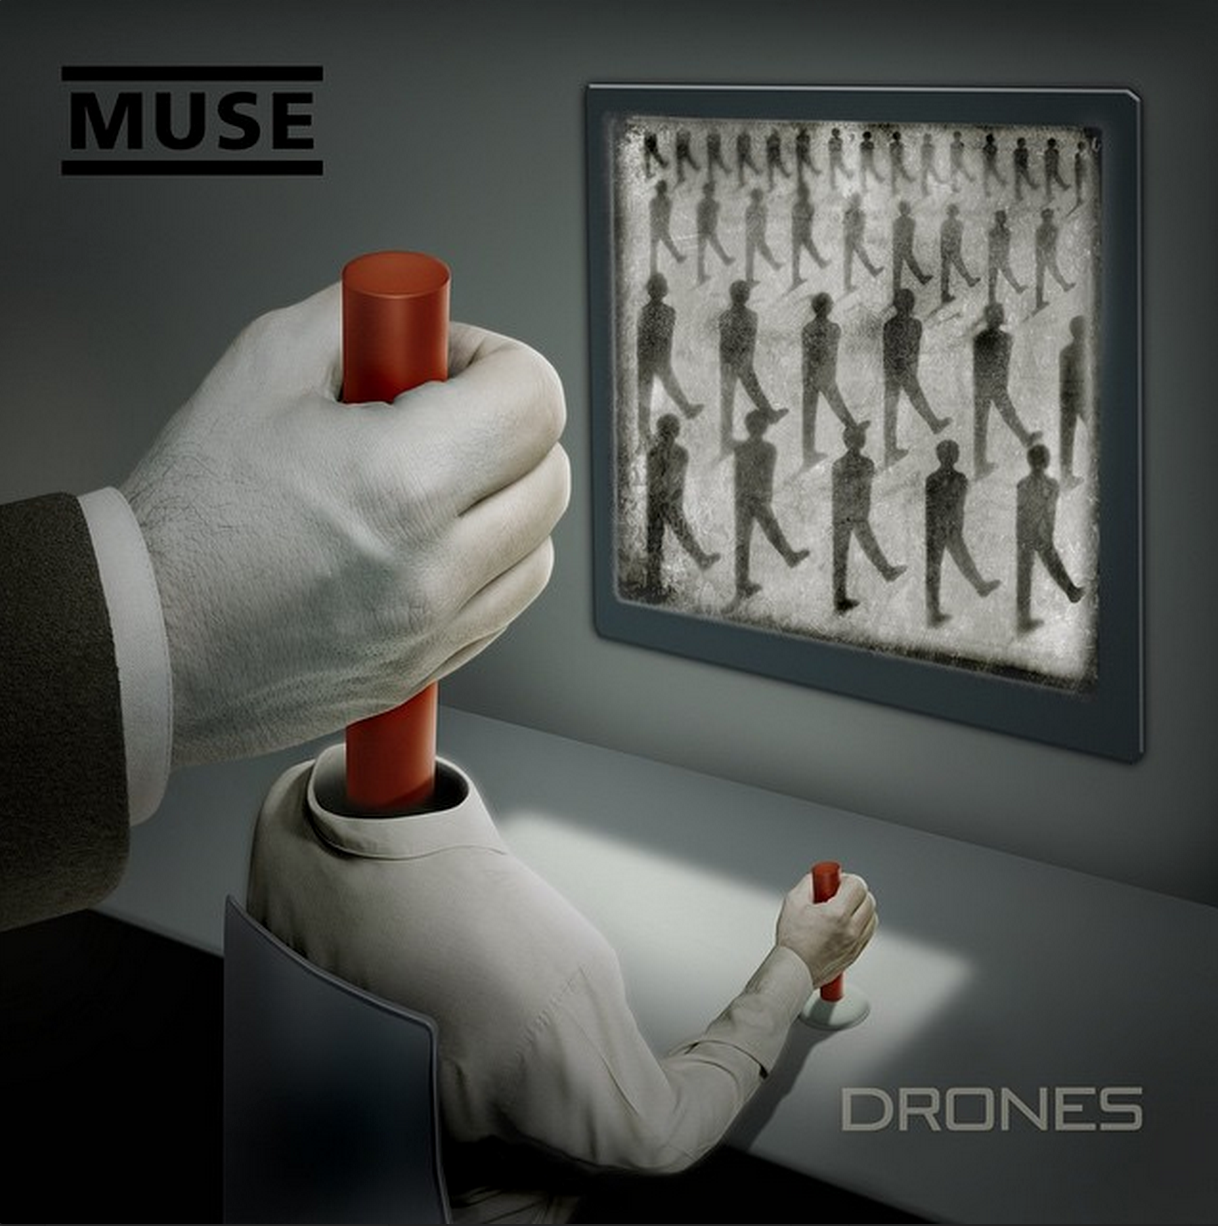 Friday loop song: Muse - Psycho (Super drone)